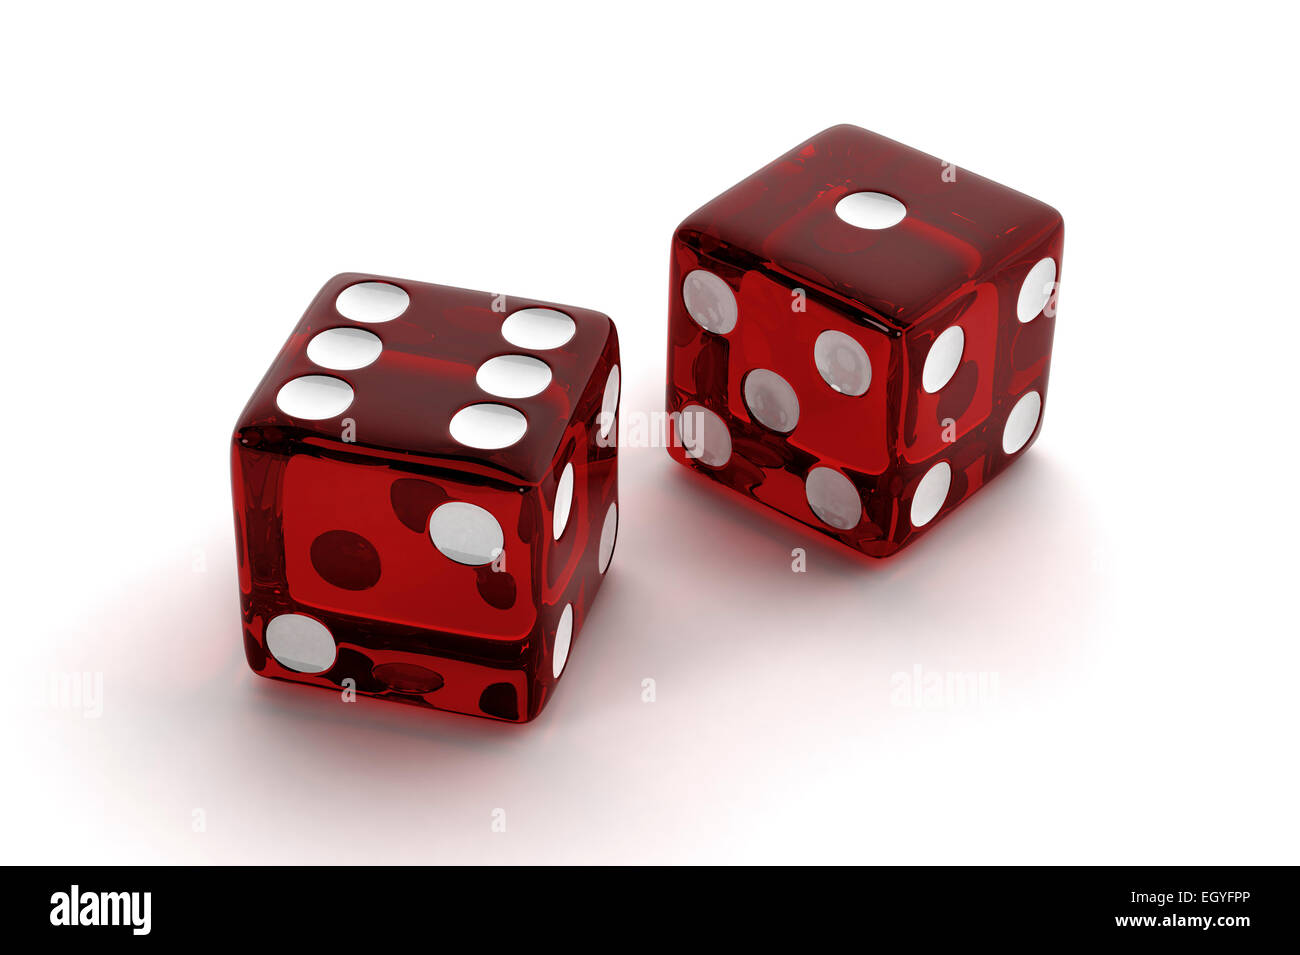 Two red, semi-transparent craps dice - Stock Image